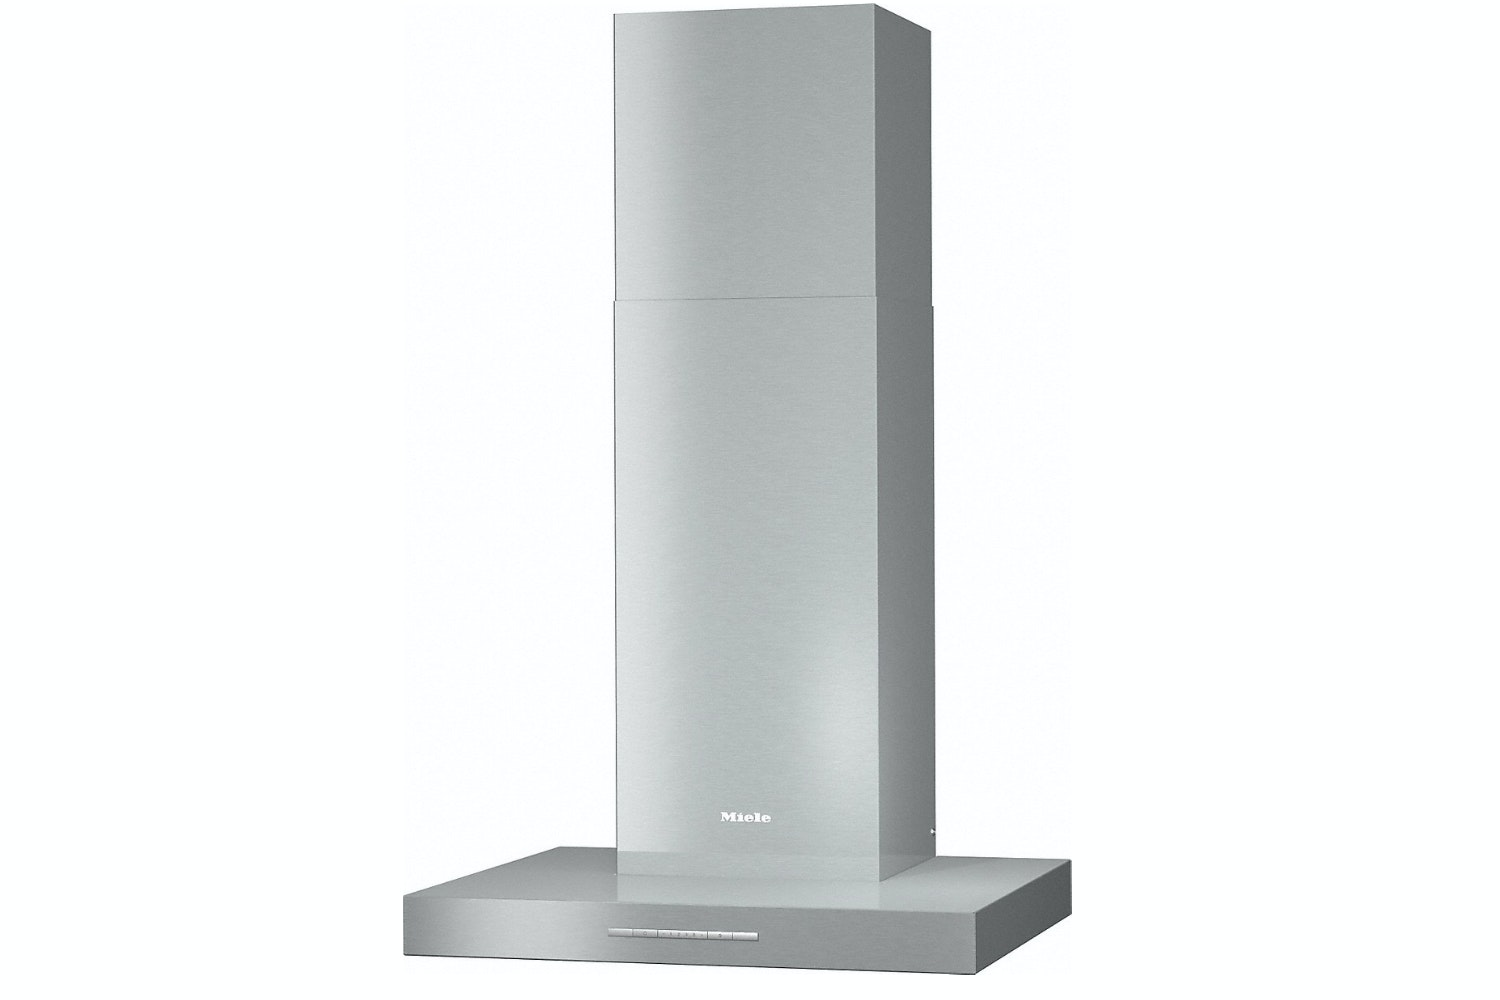 Miele Pur 68 Cooker Hood | Stainless Steel